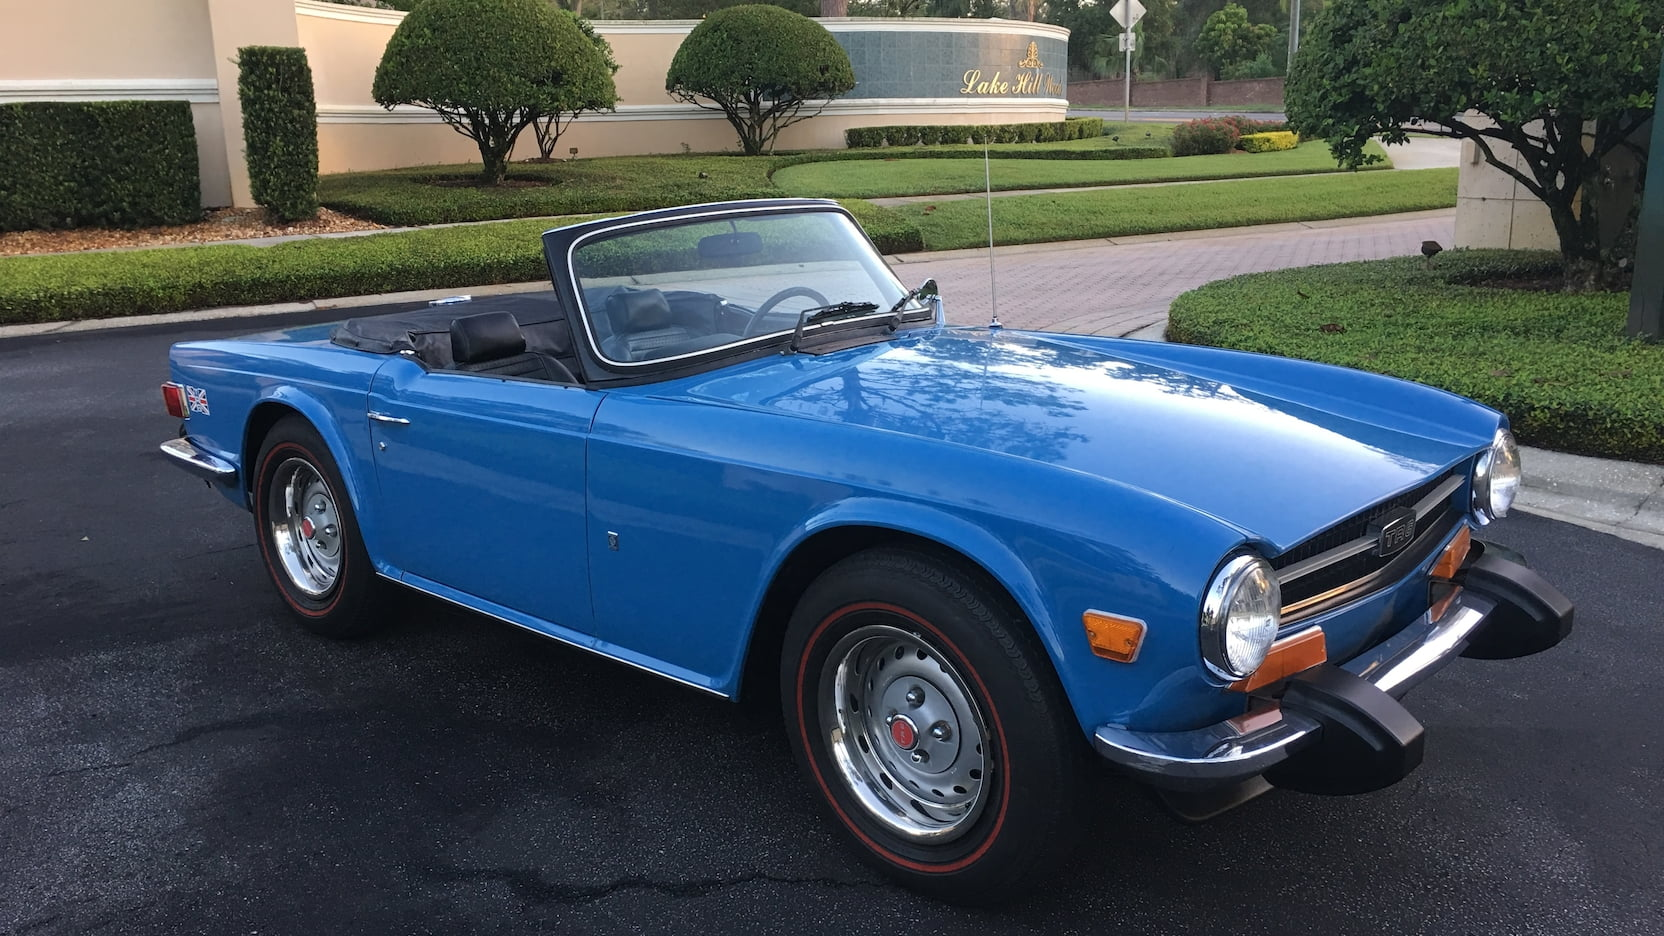 1974 Triumph TR6 Blue green grass and trees